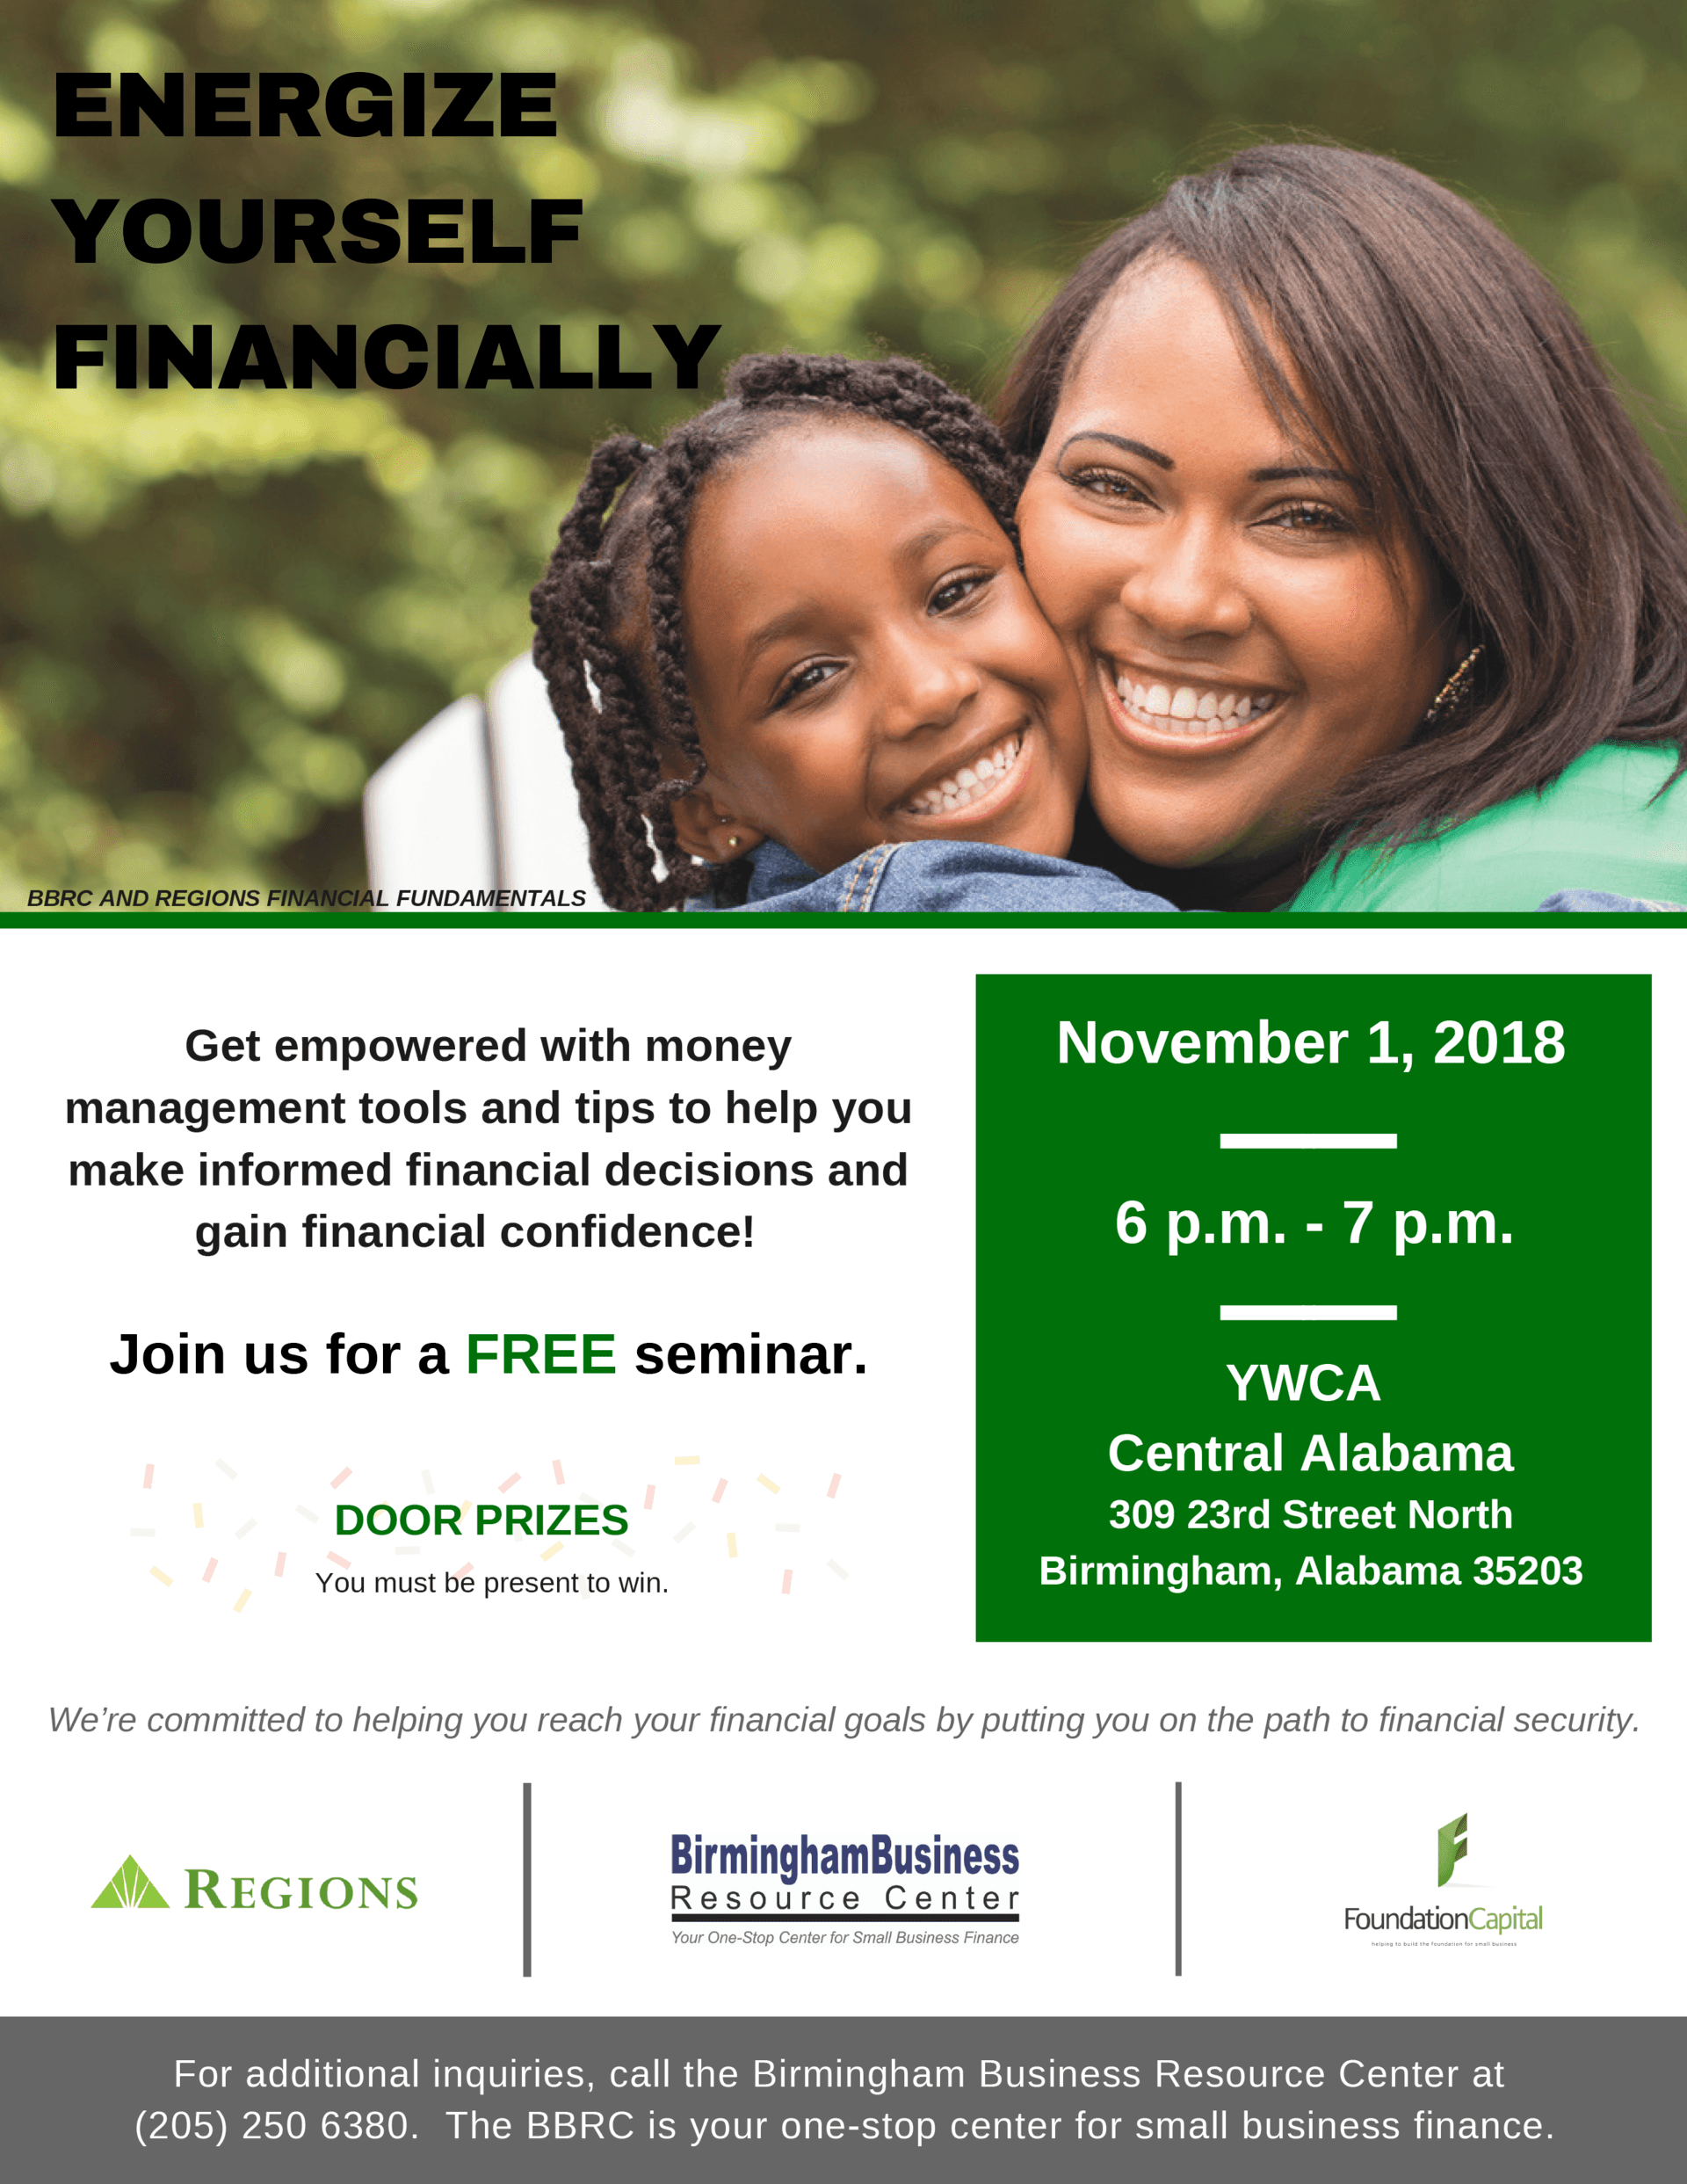 flyer for Regions seminar Energize Yourself Financially